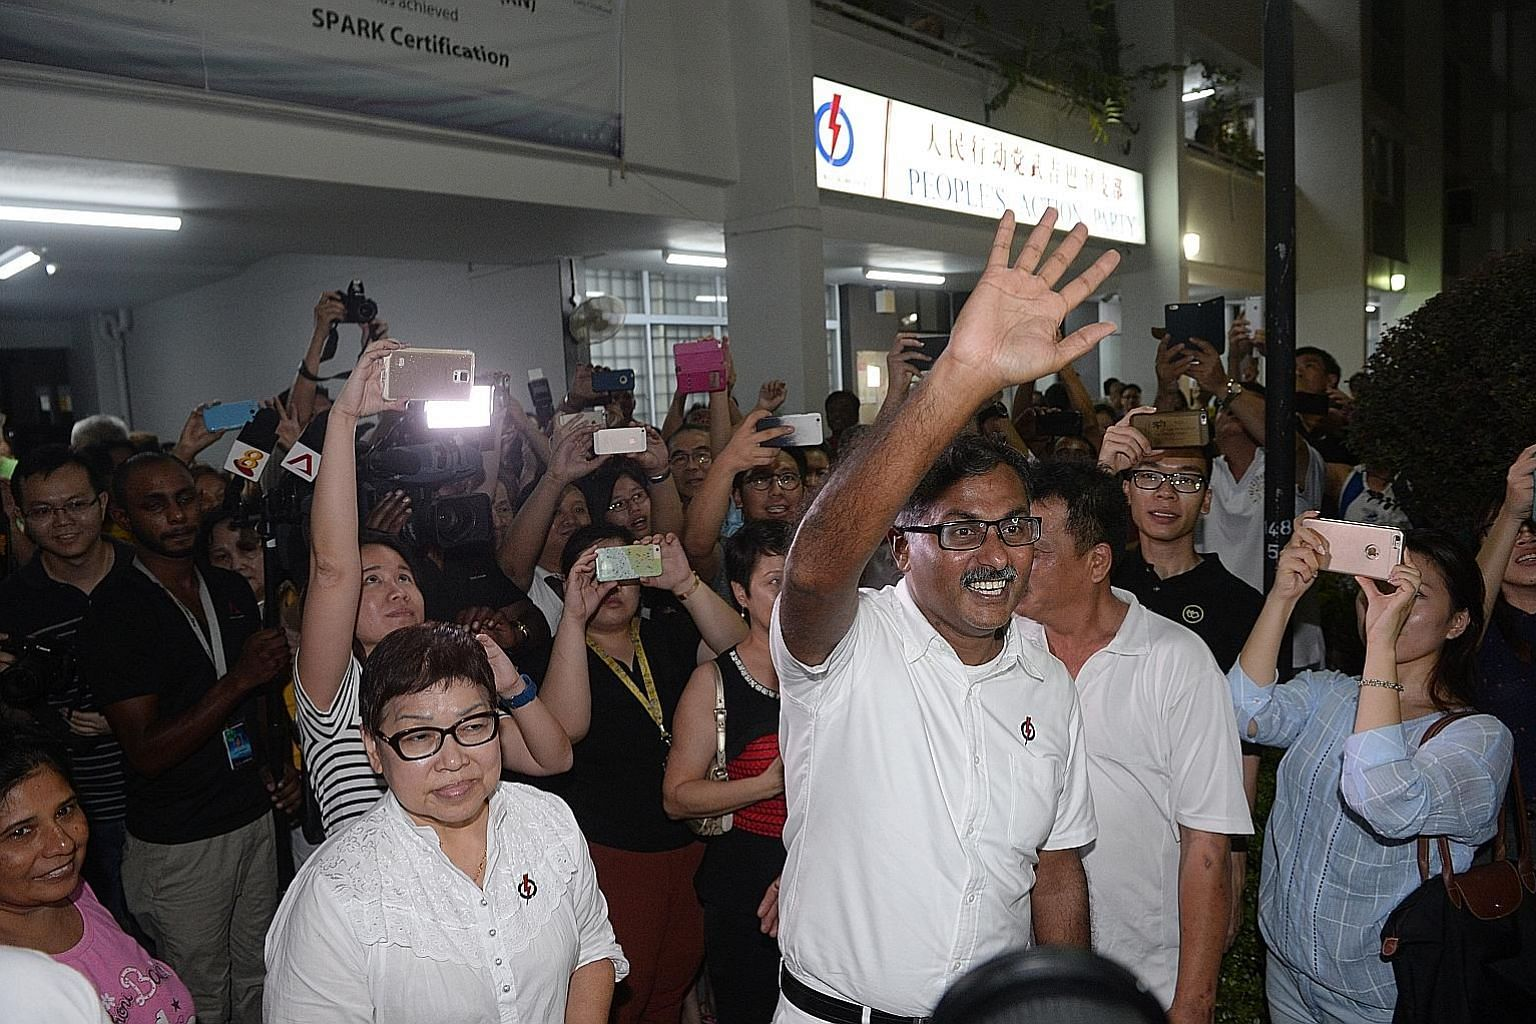 PAP newcomer Murali Pillai won 61.2 per cent of the vote against SDP chief Chee Soon Juan in the Bukit Batok by-election in May after Mr David Ong resigned over an alleged extramarital affair with a grassroots activist.